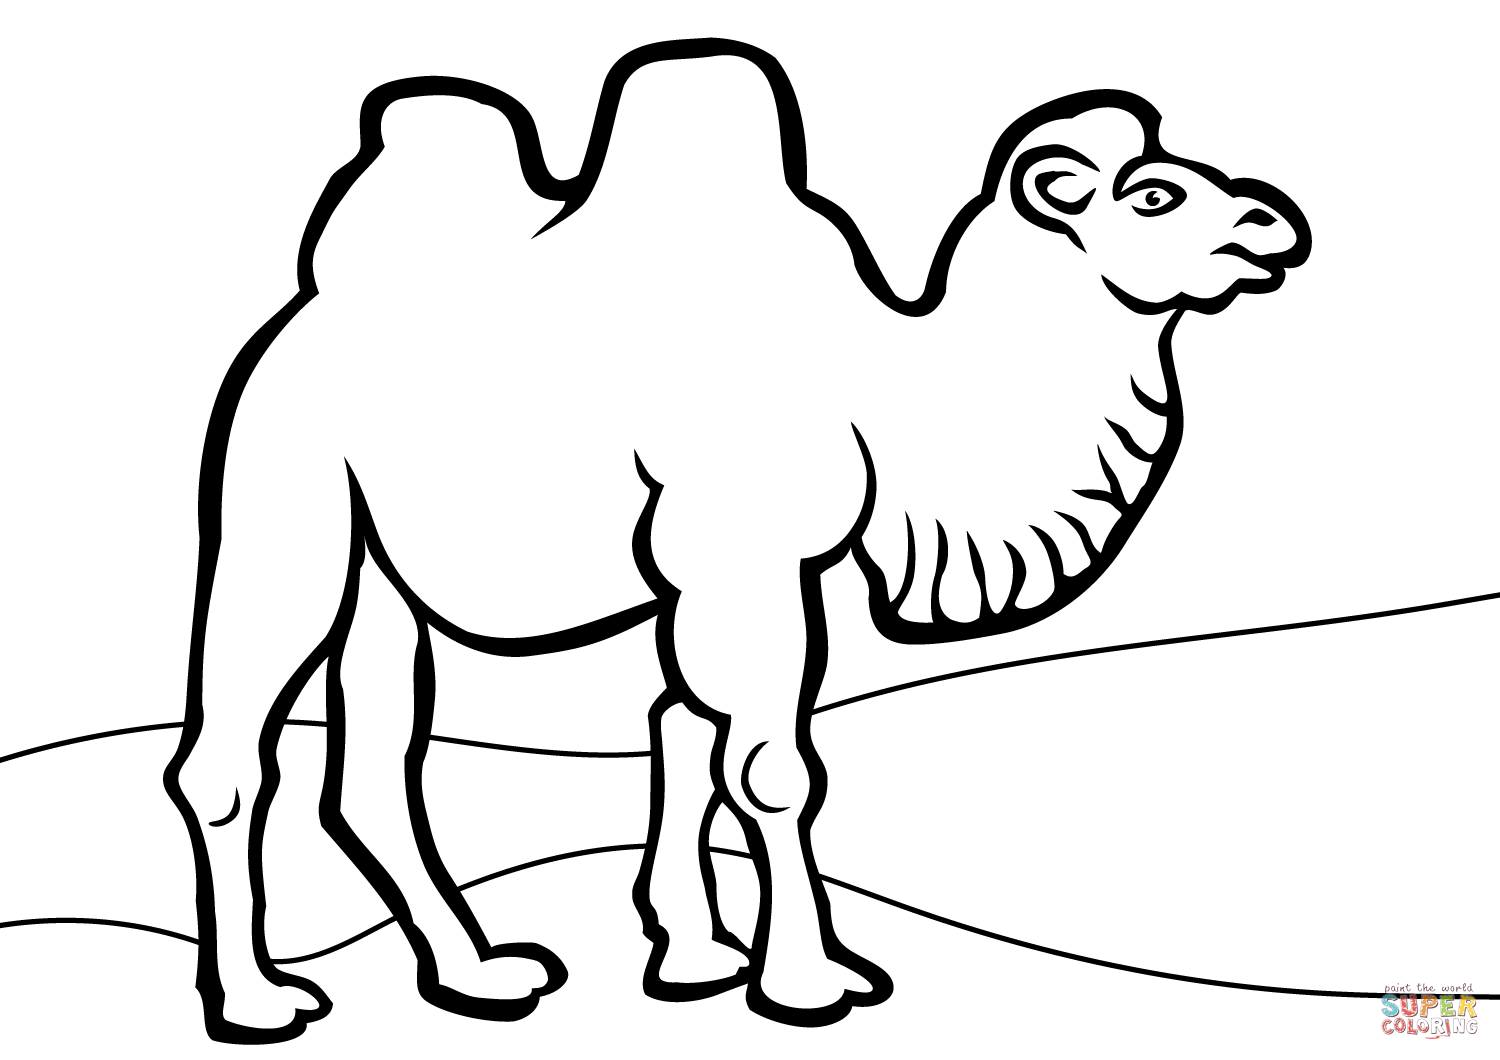 camels coloring pages free printable camel coloring pages for kids camels pages coloring 1 1